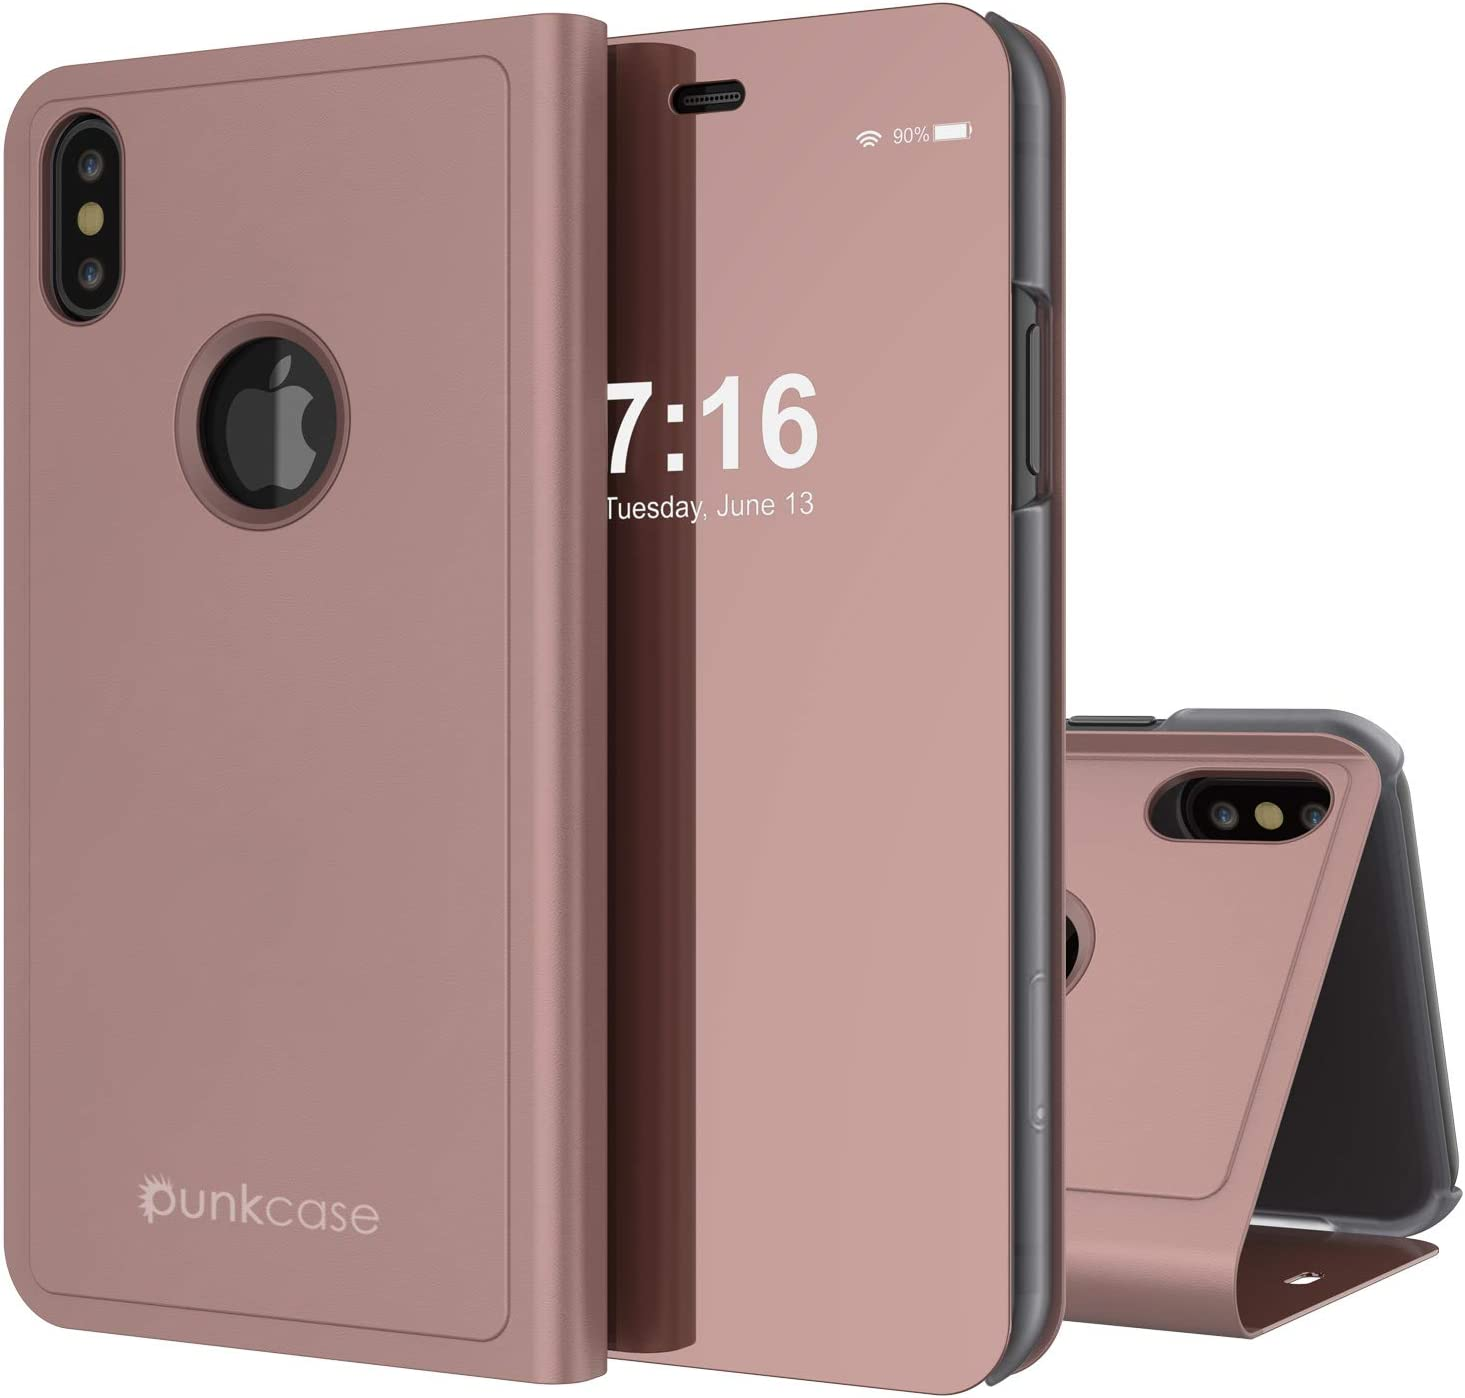 Punkcase iPhone X Reflector Case Protective Flip Cover W/Scratch Resistant Semi Translucent Mirror Front & Non-Slip PU Leather Back Integrated Kickstand Compatible W/Apple iPhone X (Rose Gold)